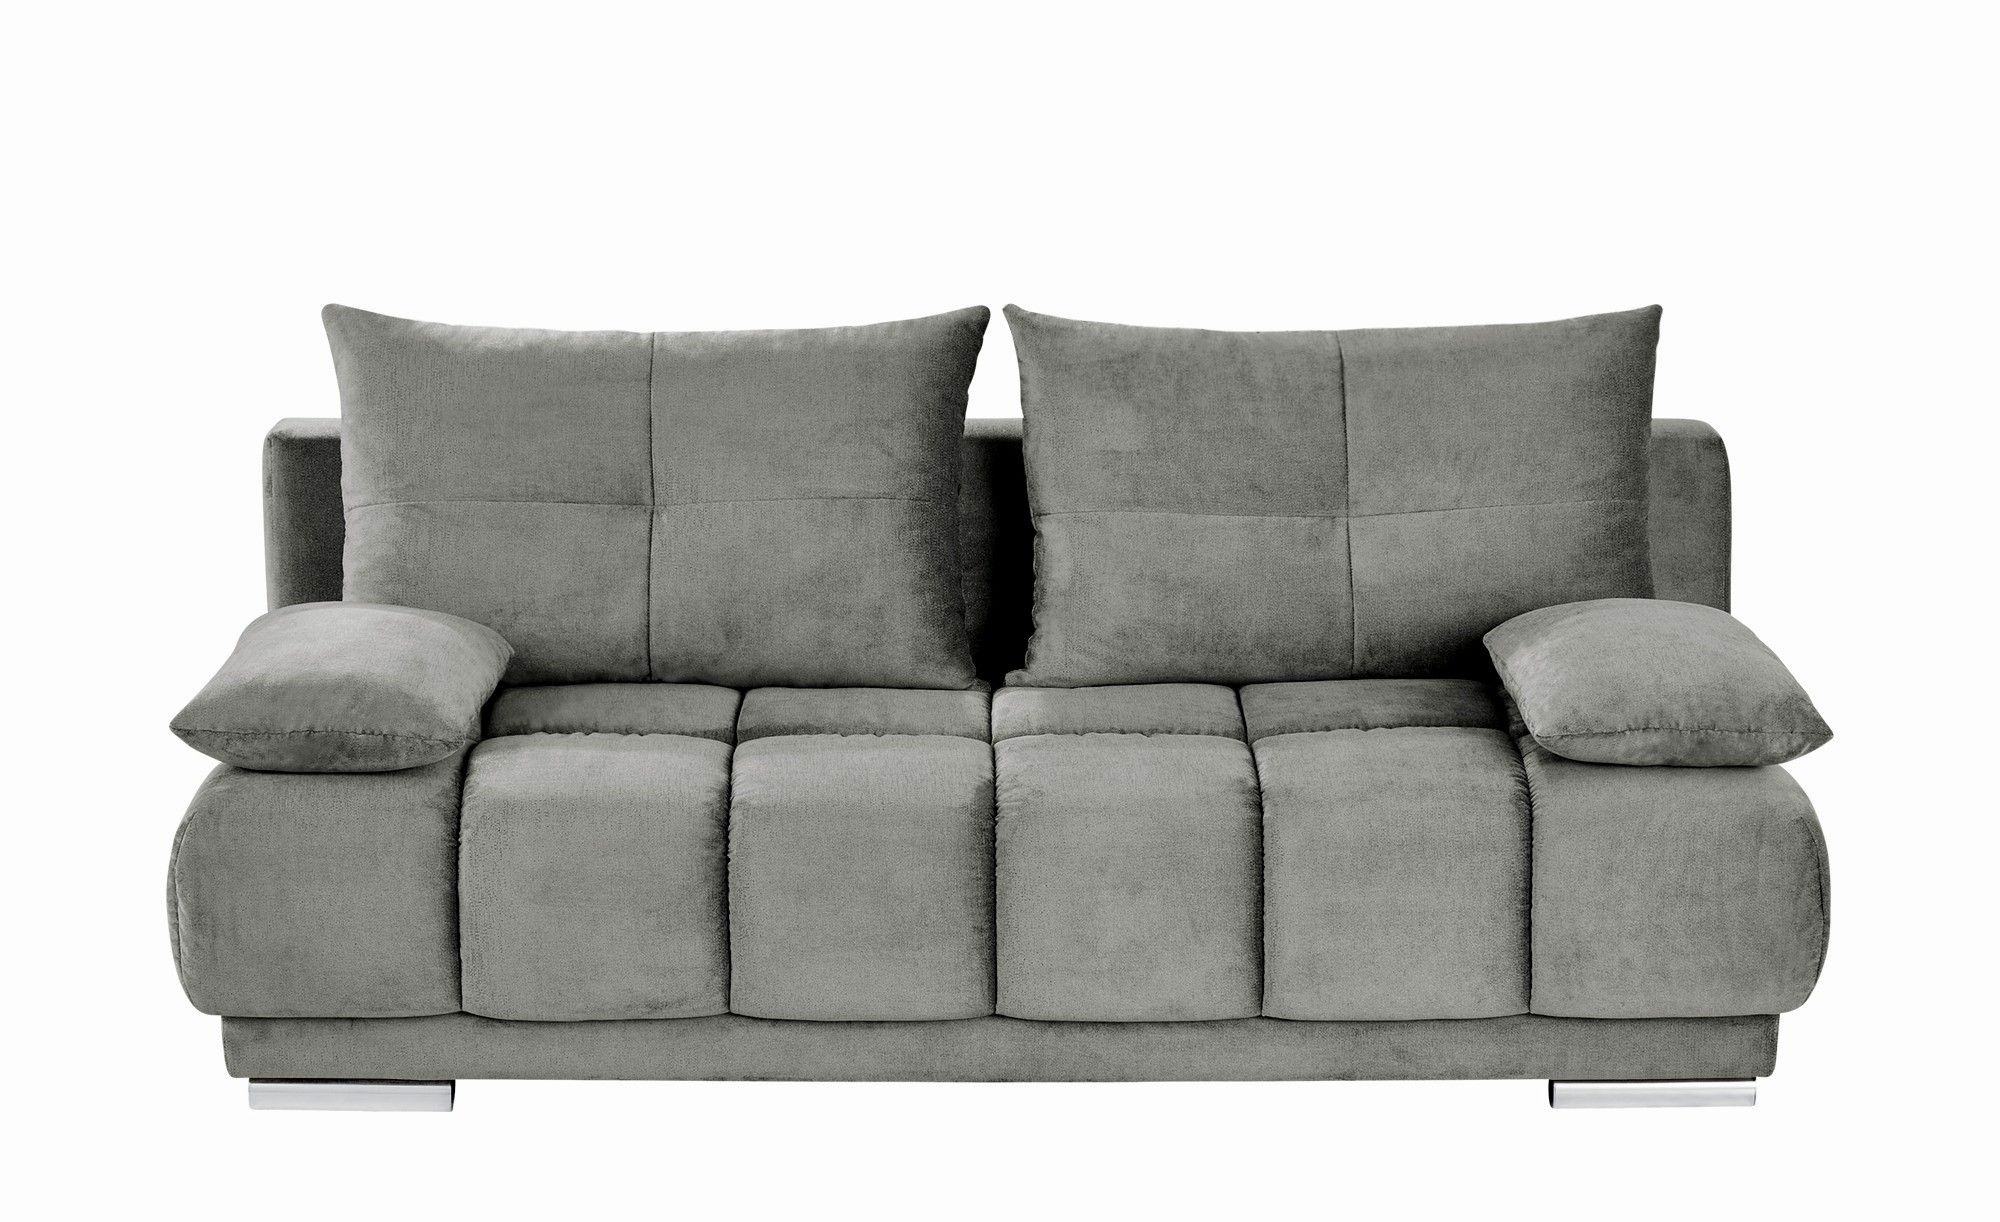 Schlafcouch Kaufen Beautiful Qualitats Schlafsofa Best Collection